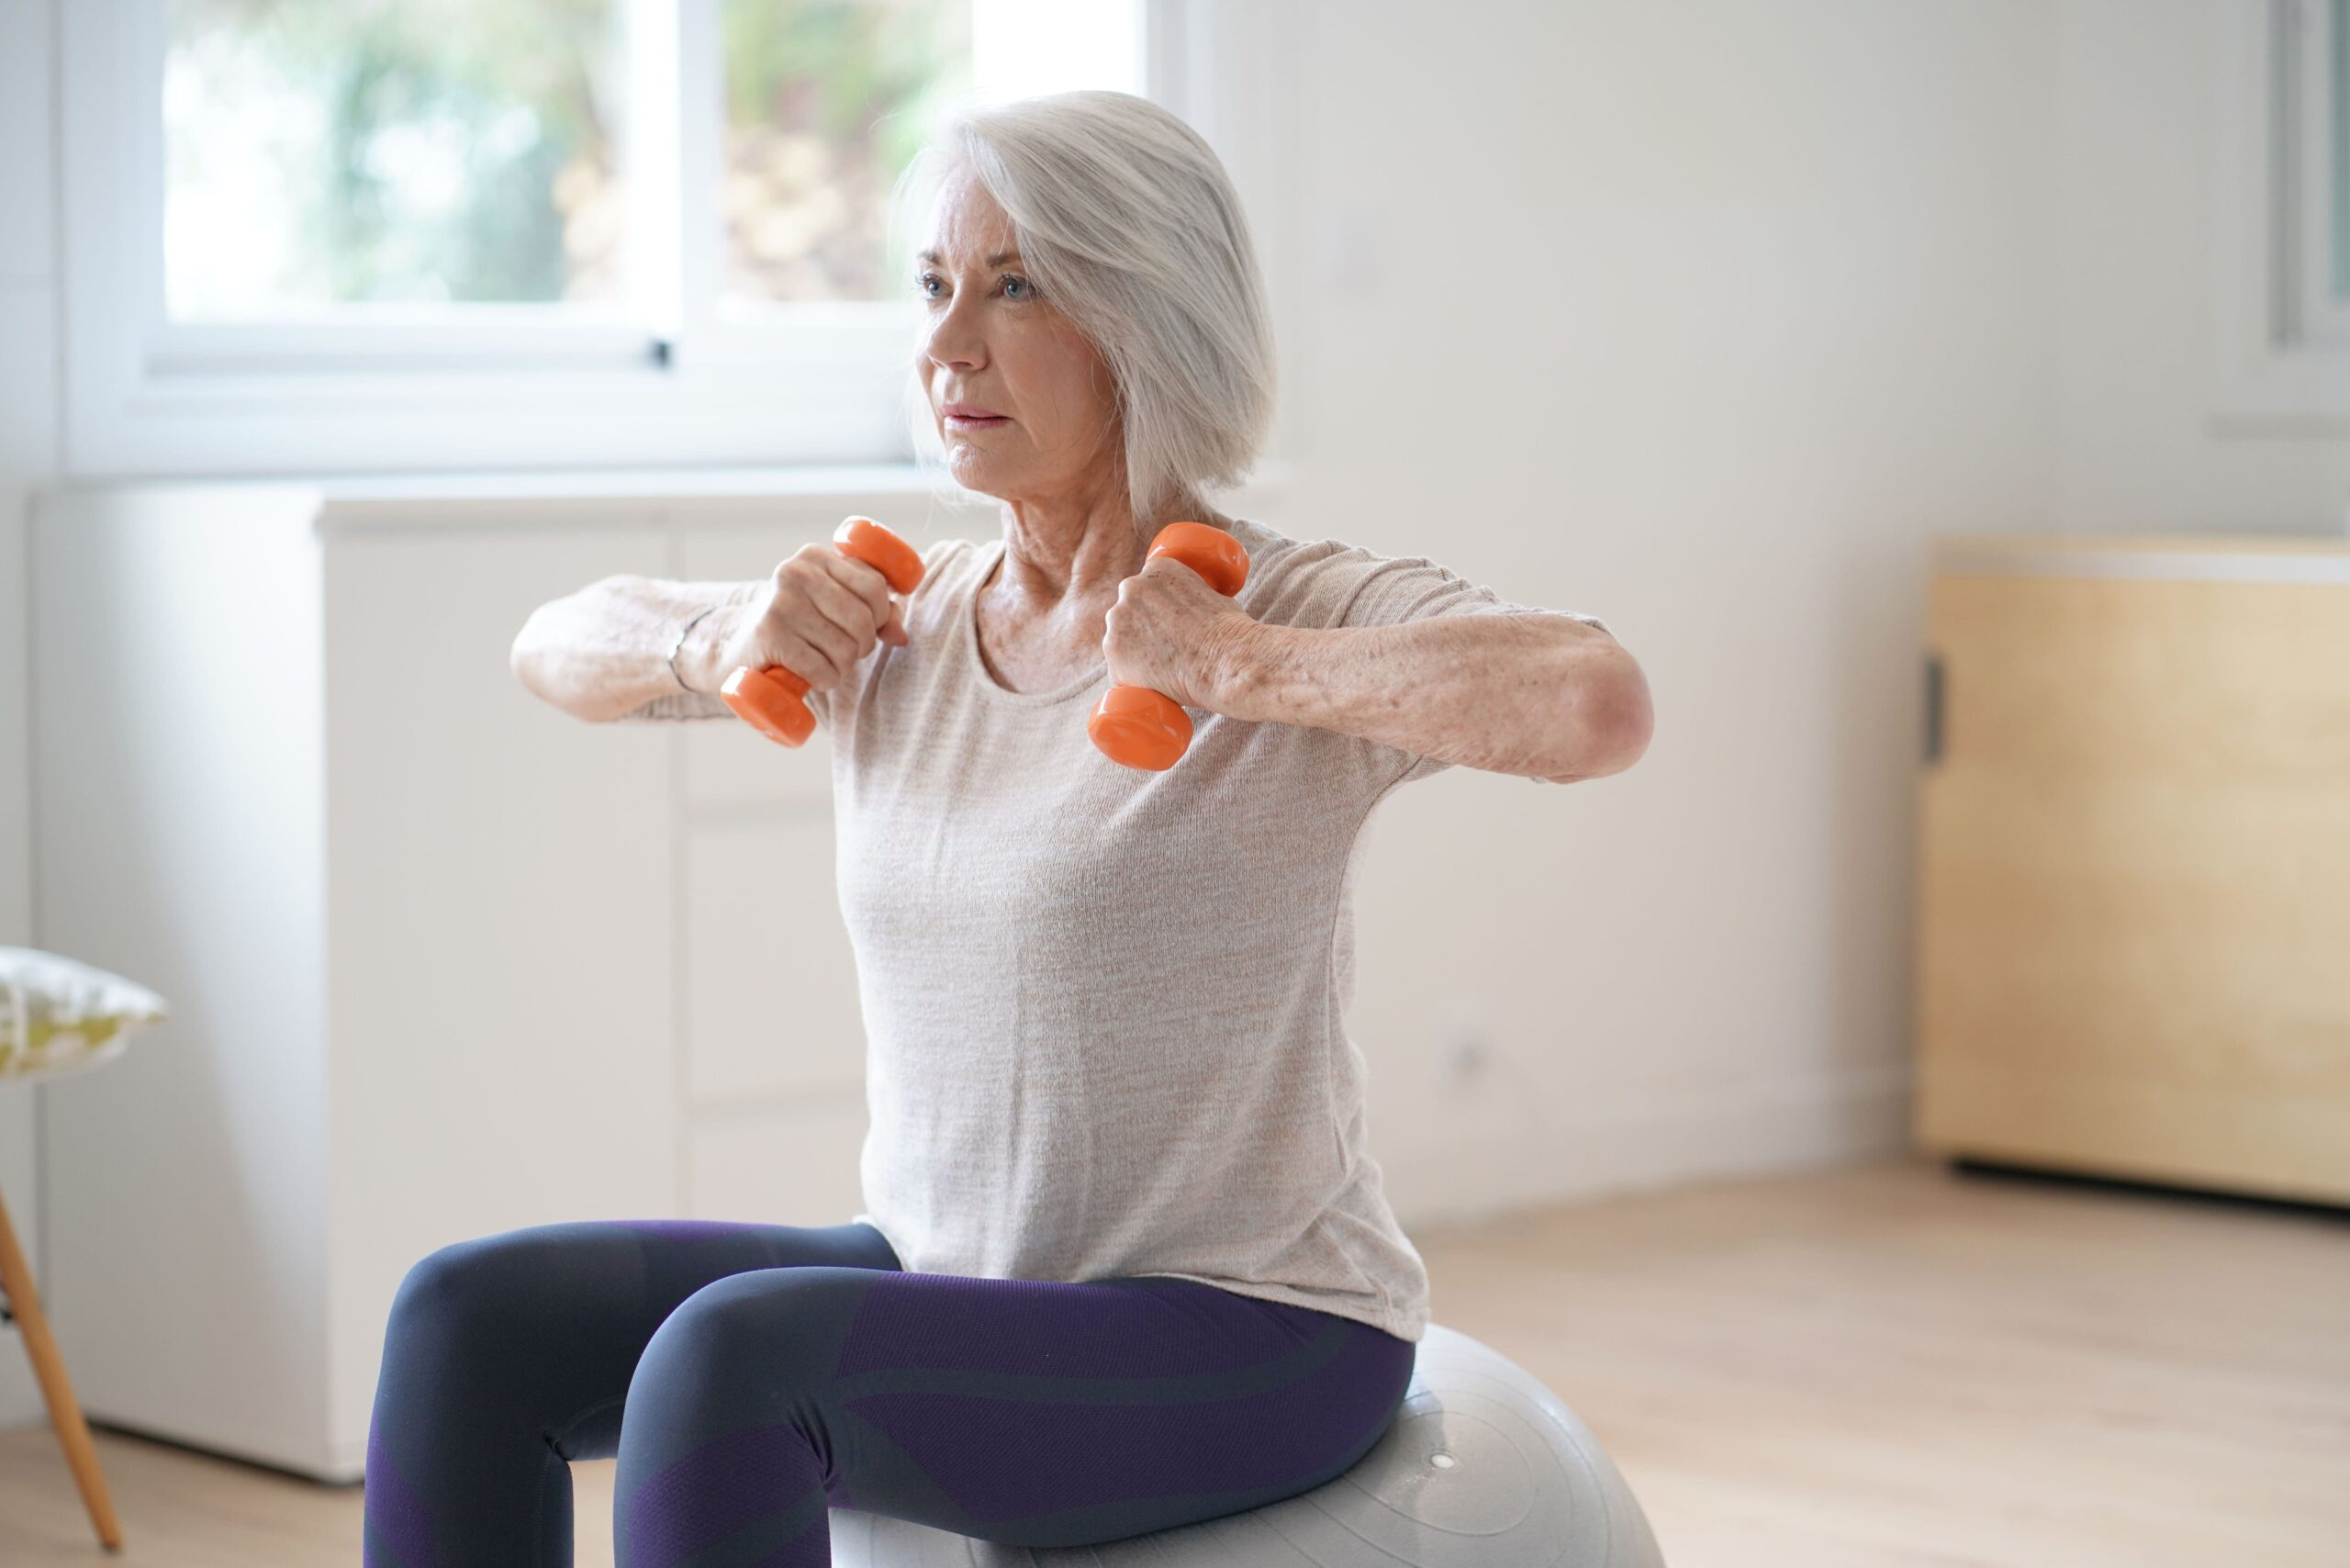 Regain Your Comfort By Following These Arthritis Treatment Tips